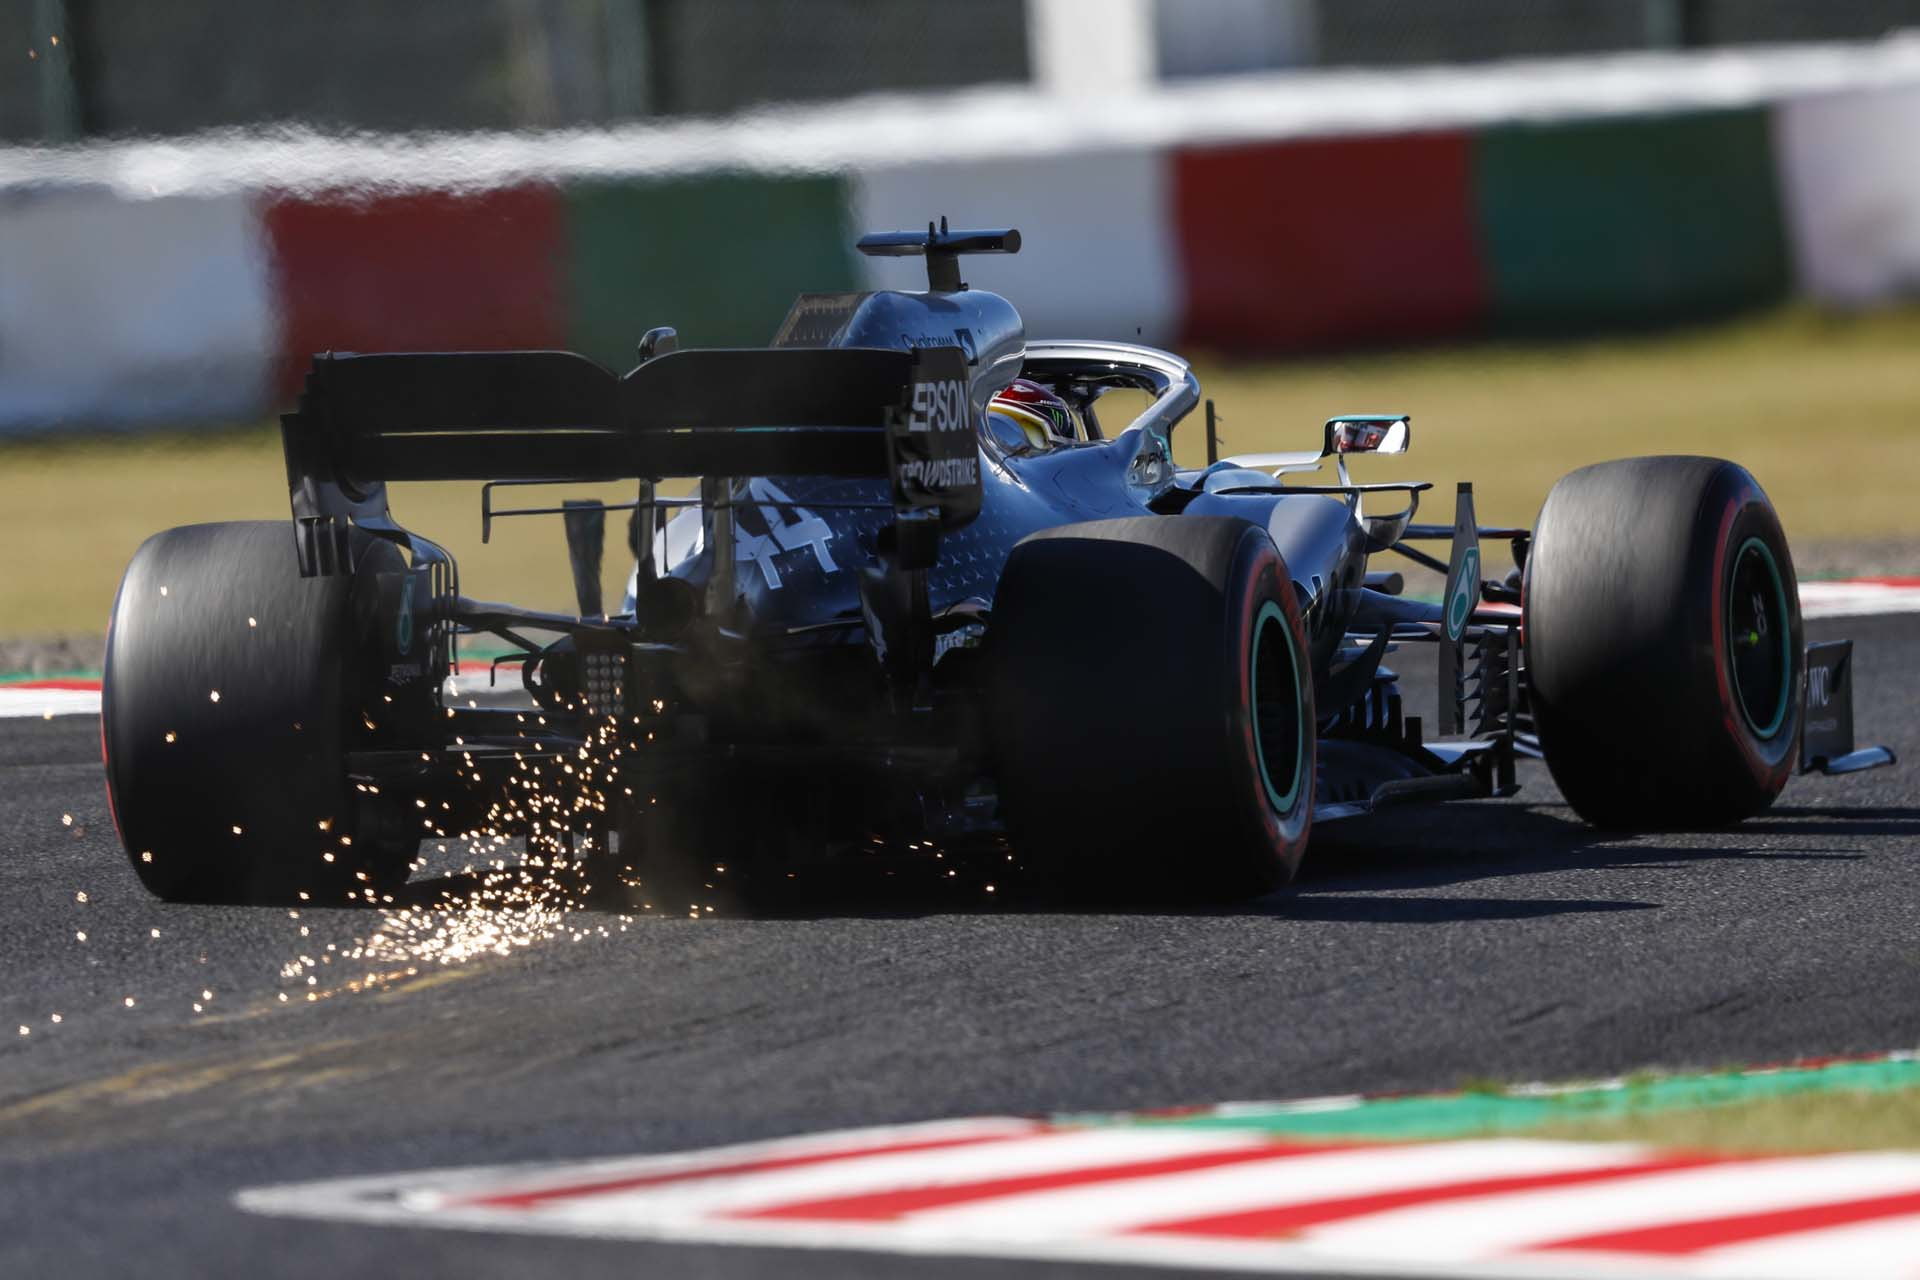 2019 Japanese Grand Prix, Sunday - LAT Images